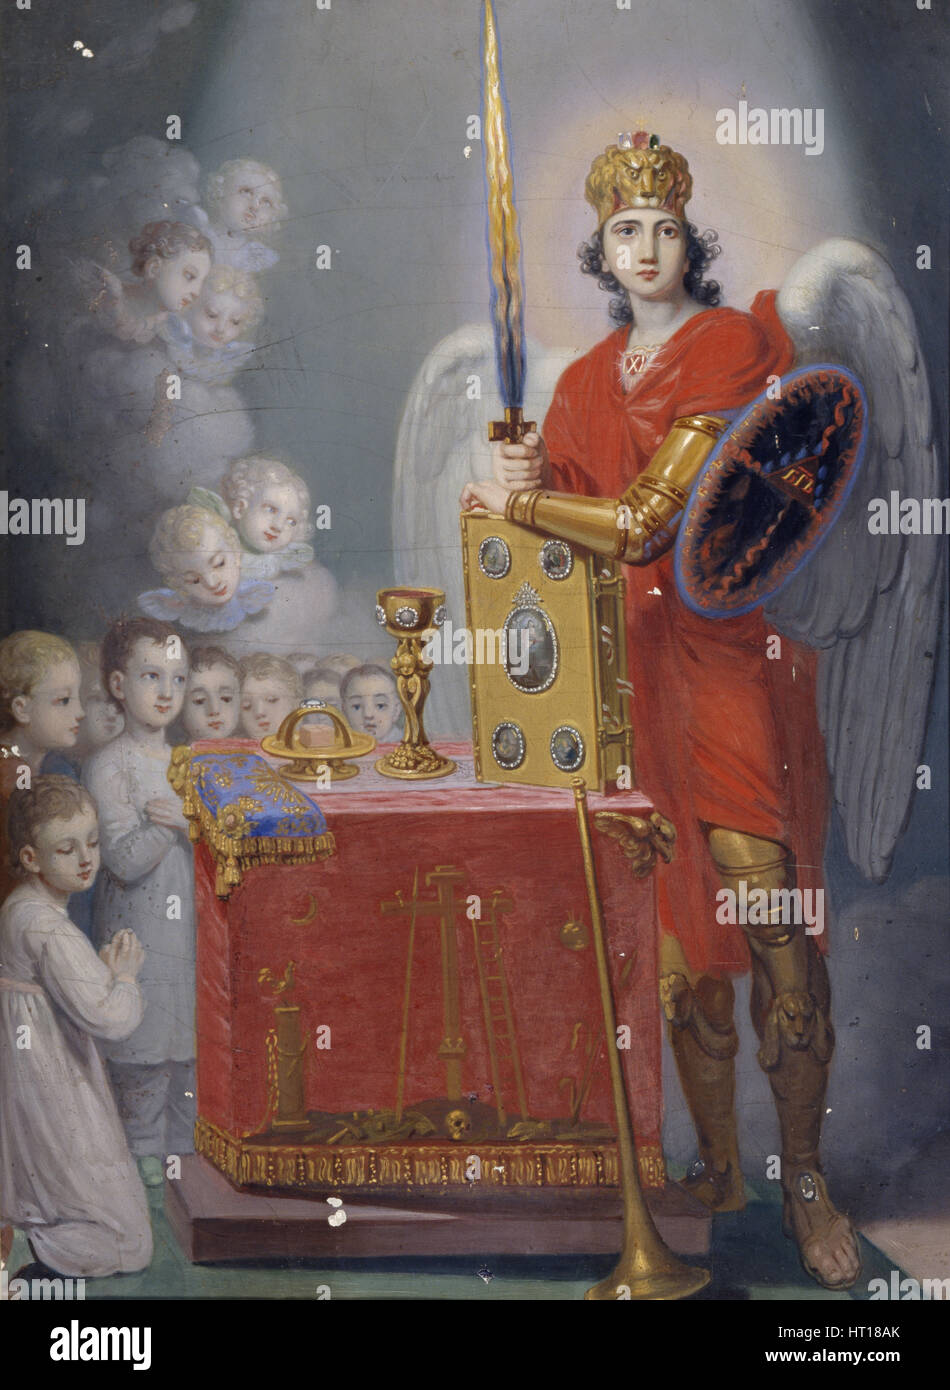 The Children of the Emperor Paul I before the altar, protected by Archangel Michael. Artist: Borovikovsky, Vladimir - Stock Image